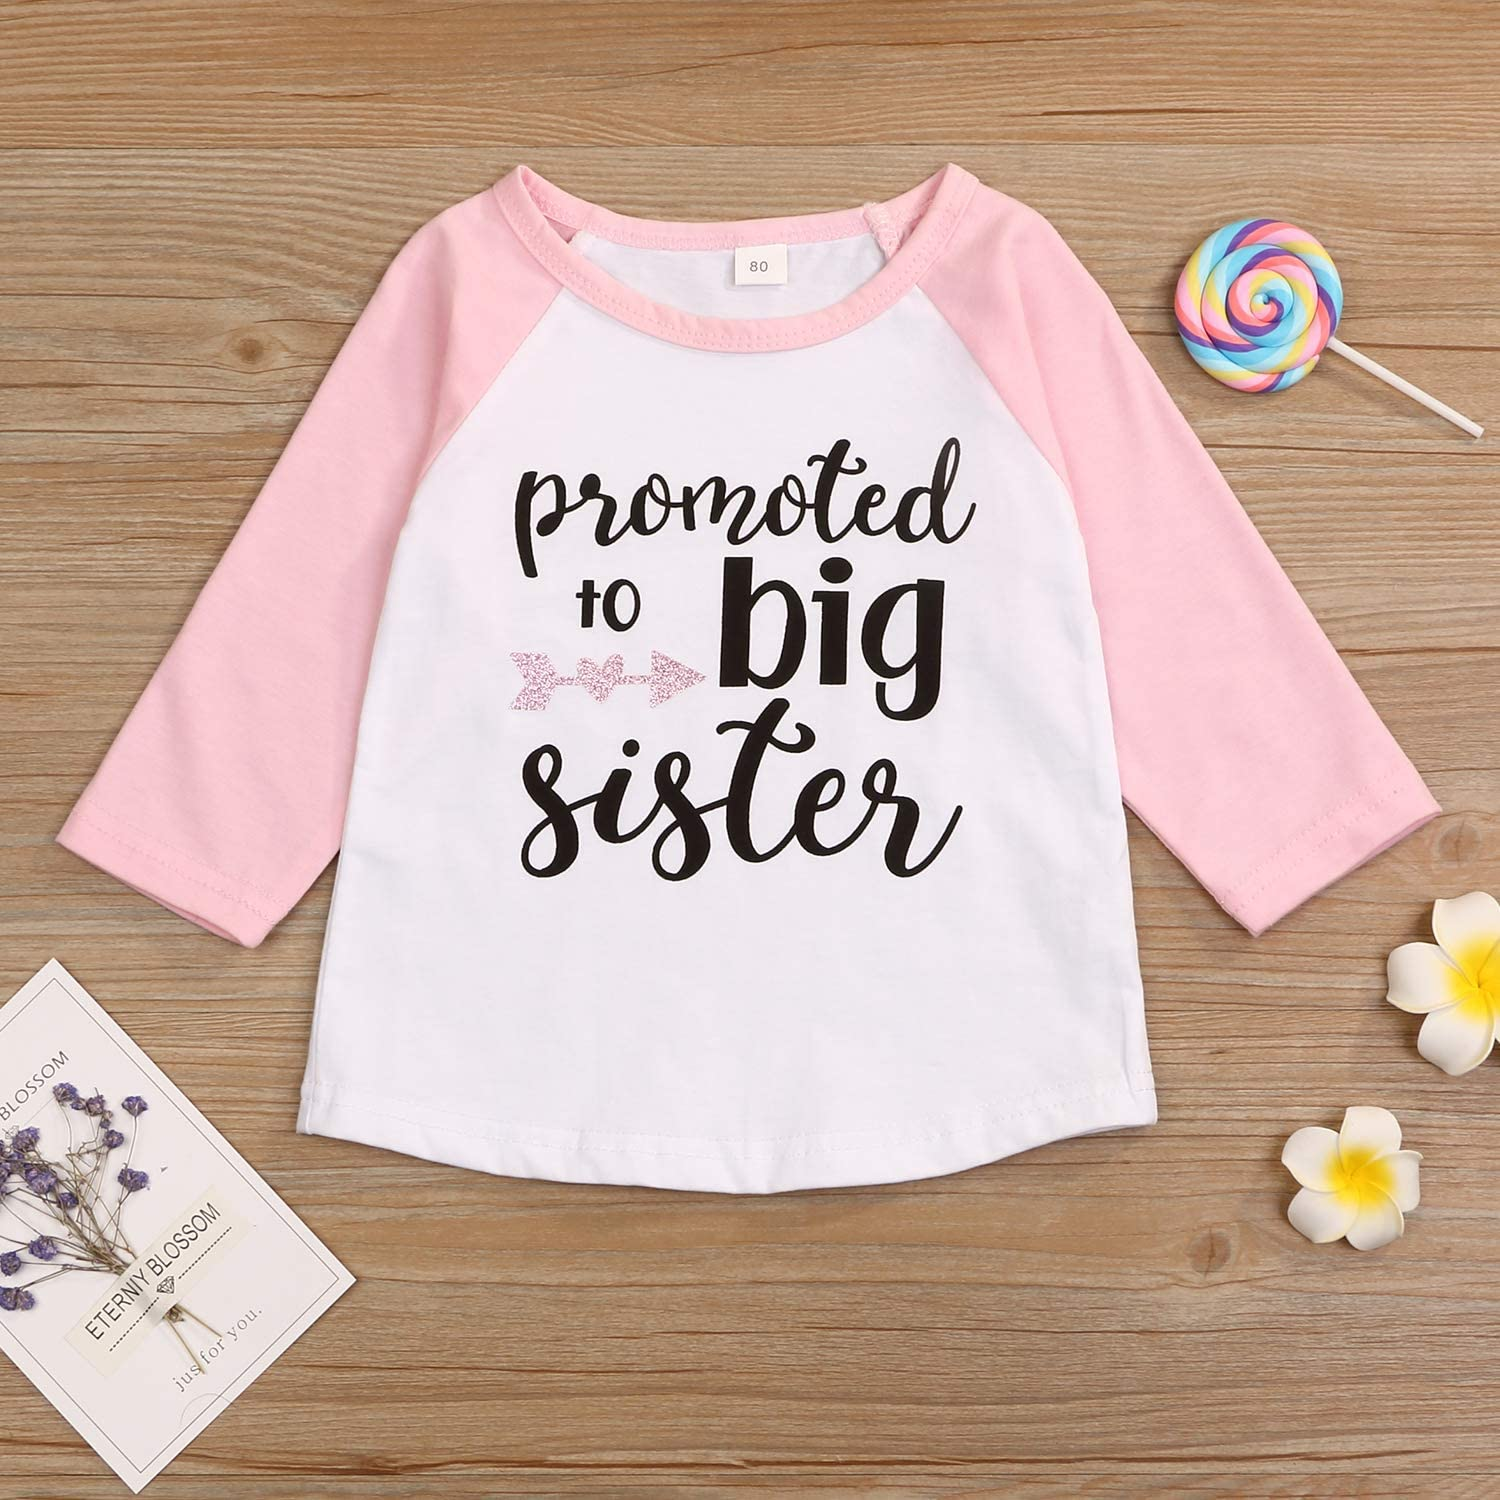 LYSMuch Toddler Baby Girls T-Shirt Promoted to Big Sister Letters Print Short Sleeve Blouse